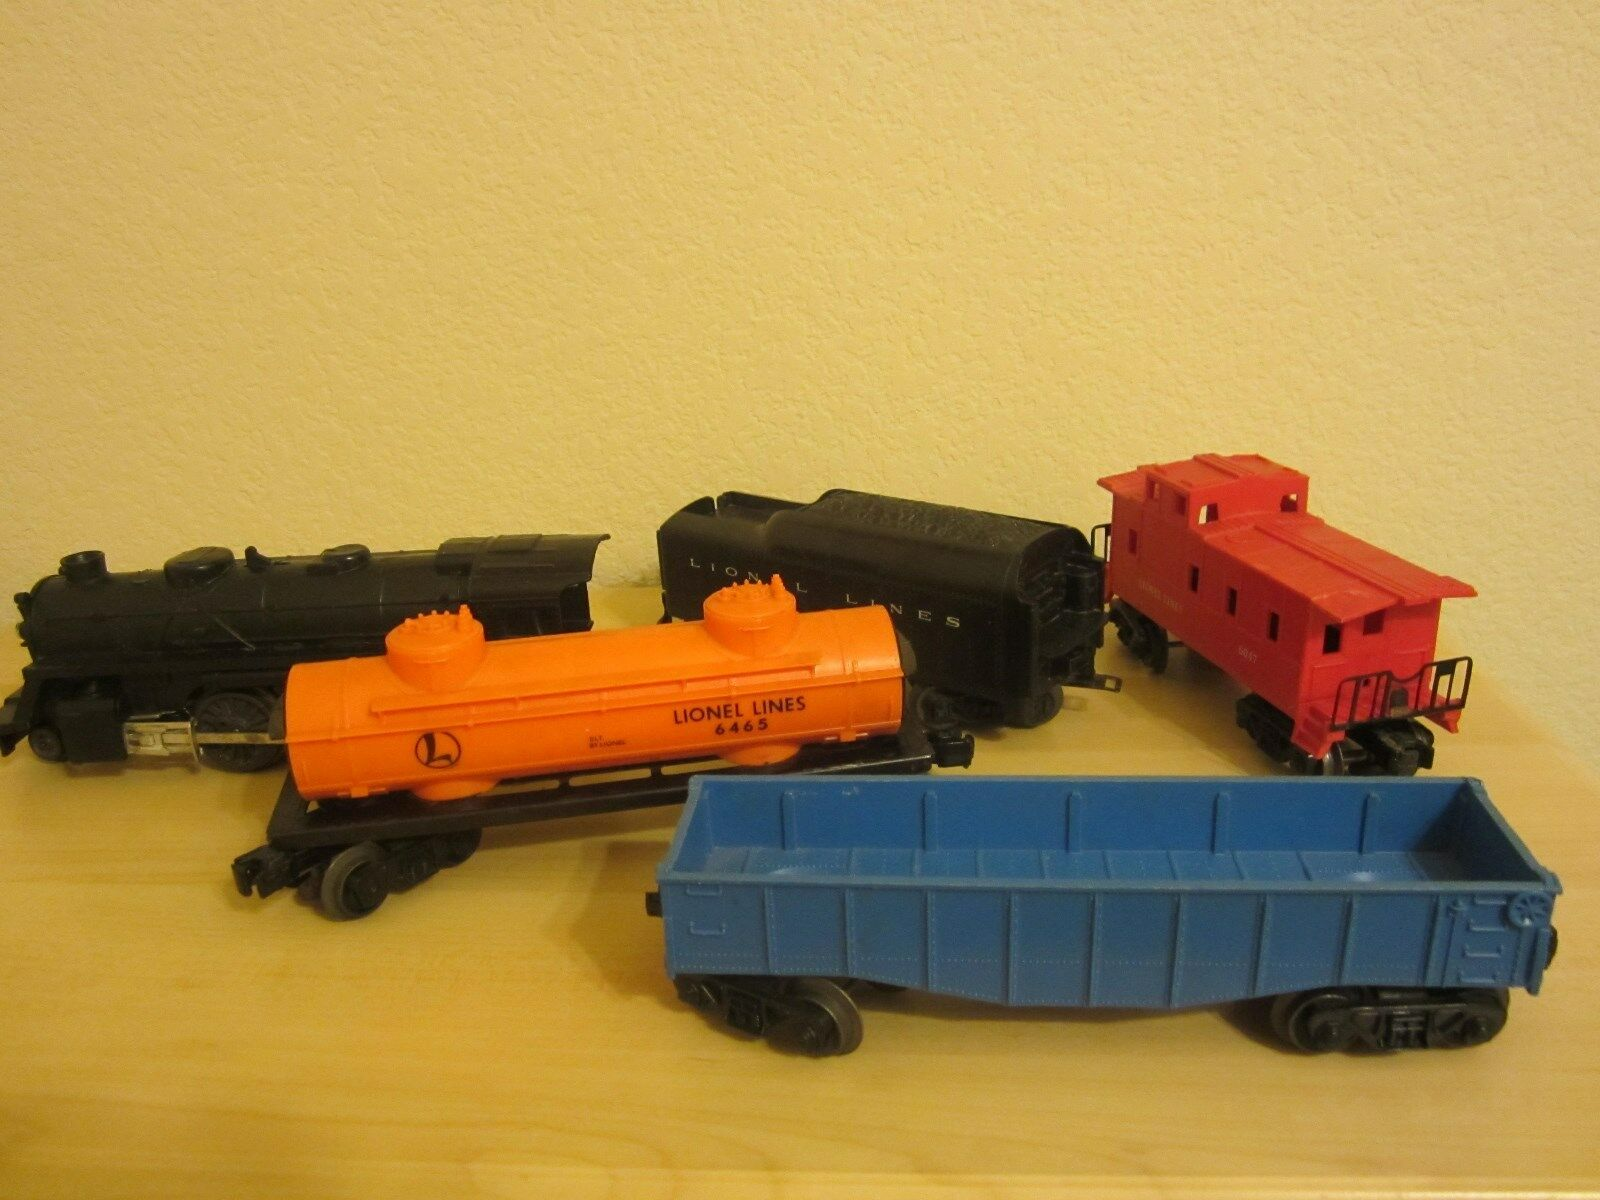 Lionel lot set 2-4-2 locomotive with tender, gondola tank car & caboose